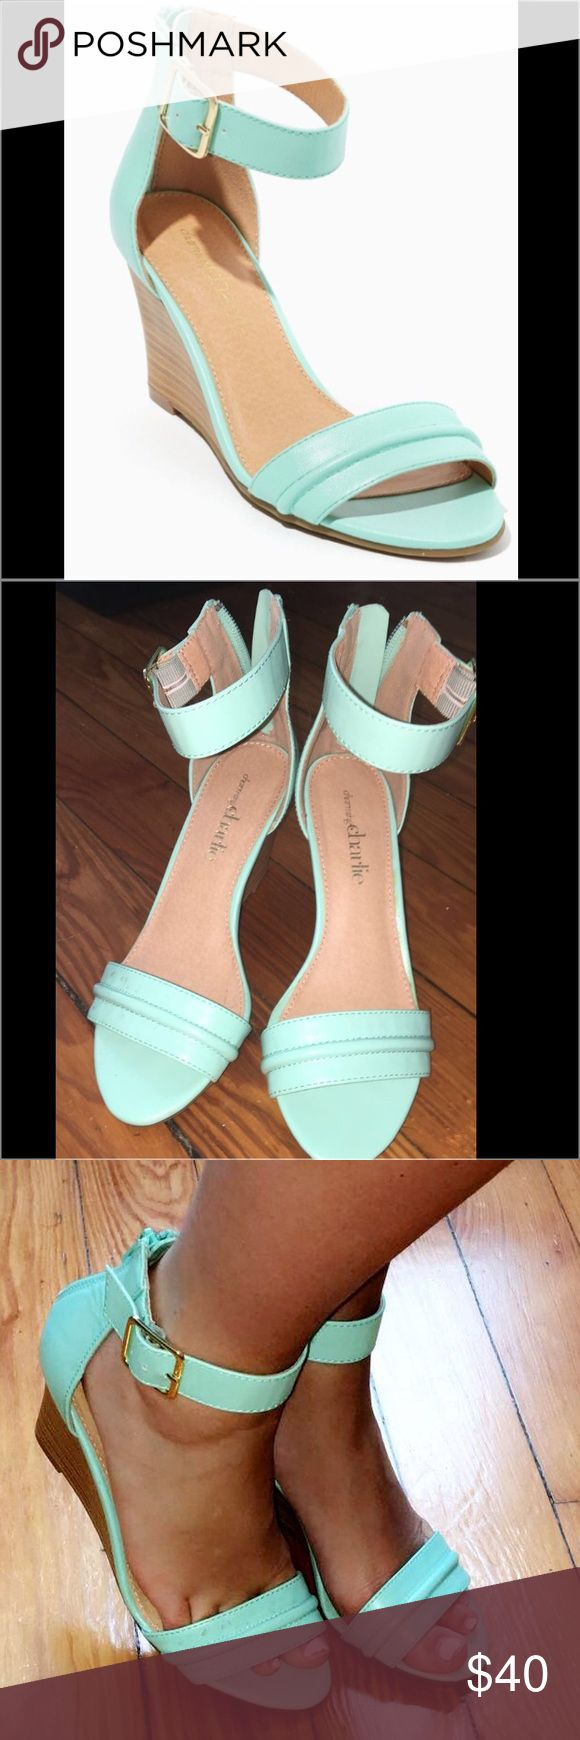 Charming Charlie  strappy wedge heels 👠 Charming Charlie Teal wedge heels , good as new. Once worn Charming Charlie Shoes Wedges